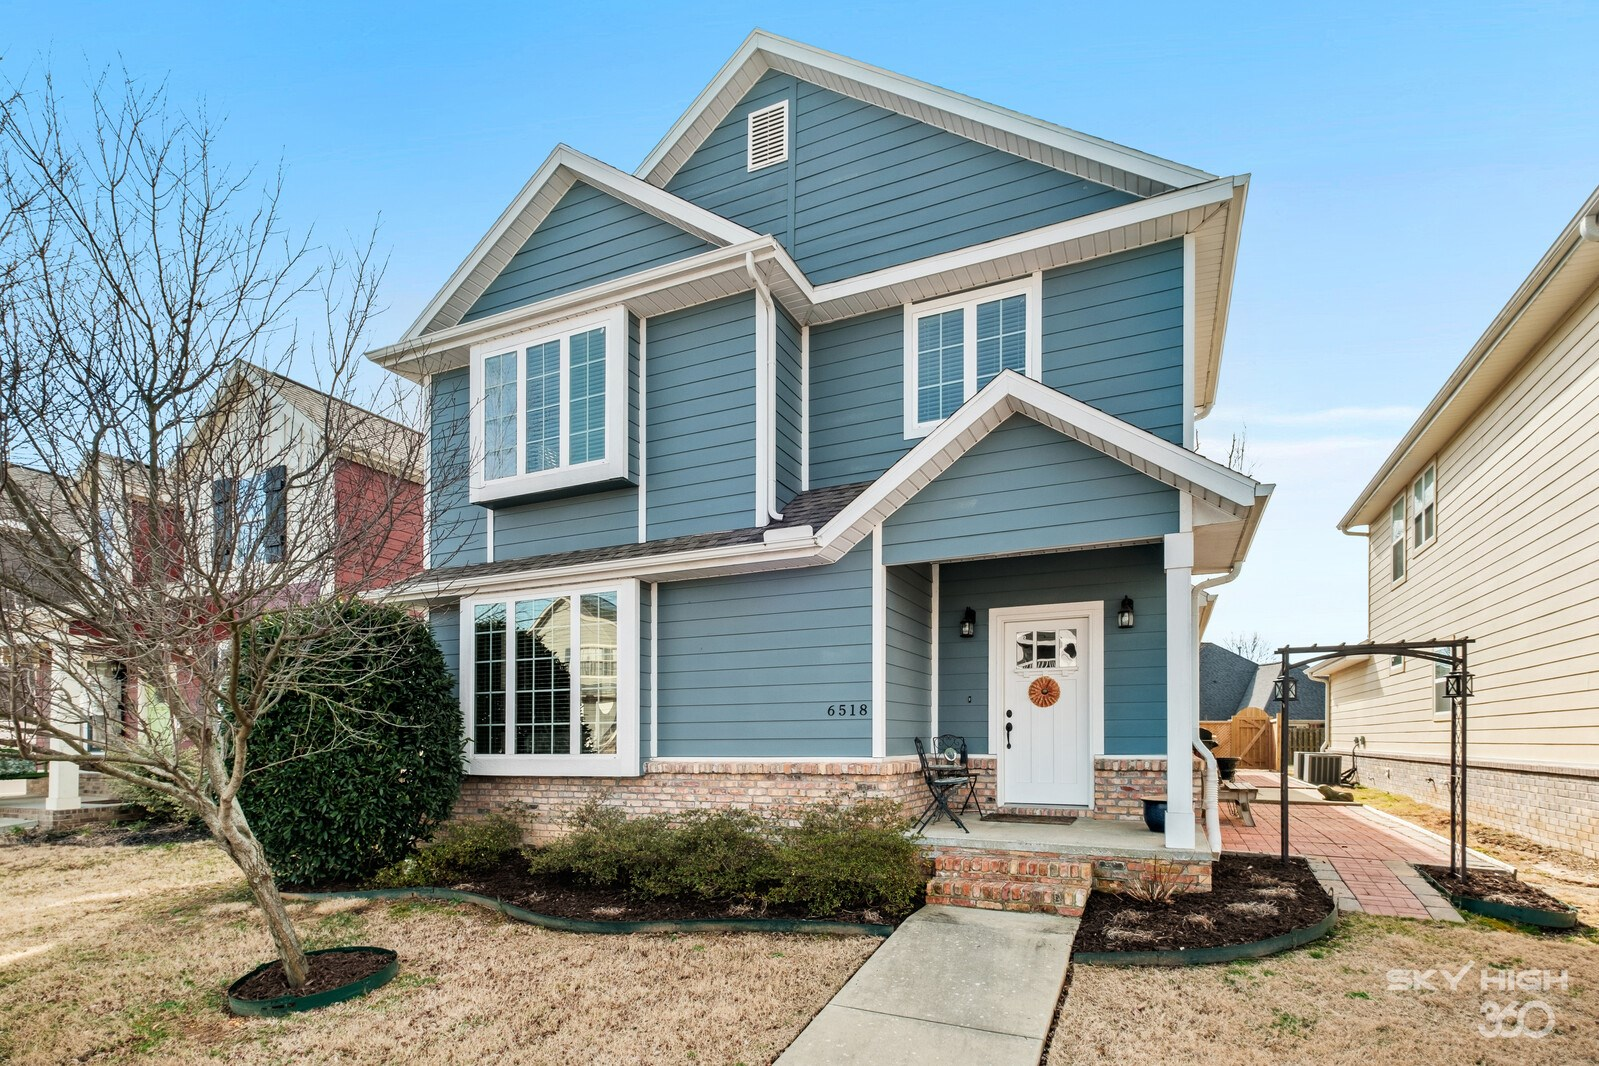 Home for Sale near Pinnacle Hills in Rogers, Arkansas